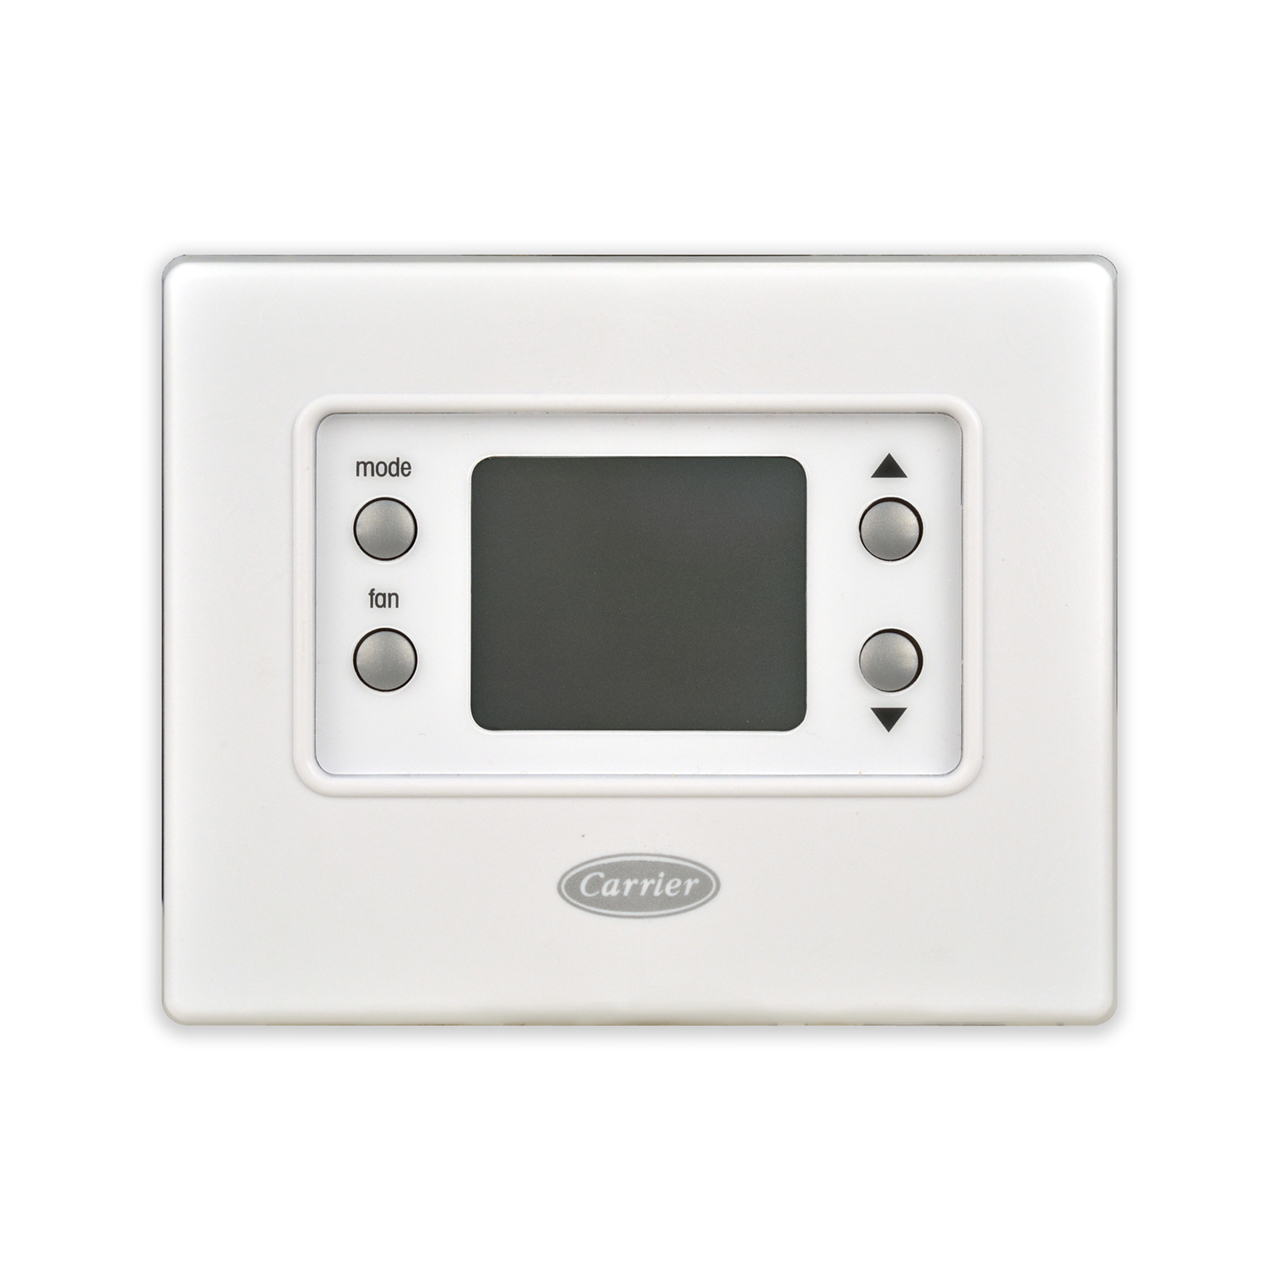 carrier-33CSCNACHP-01-non-programmable-thermostat